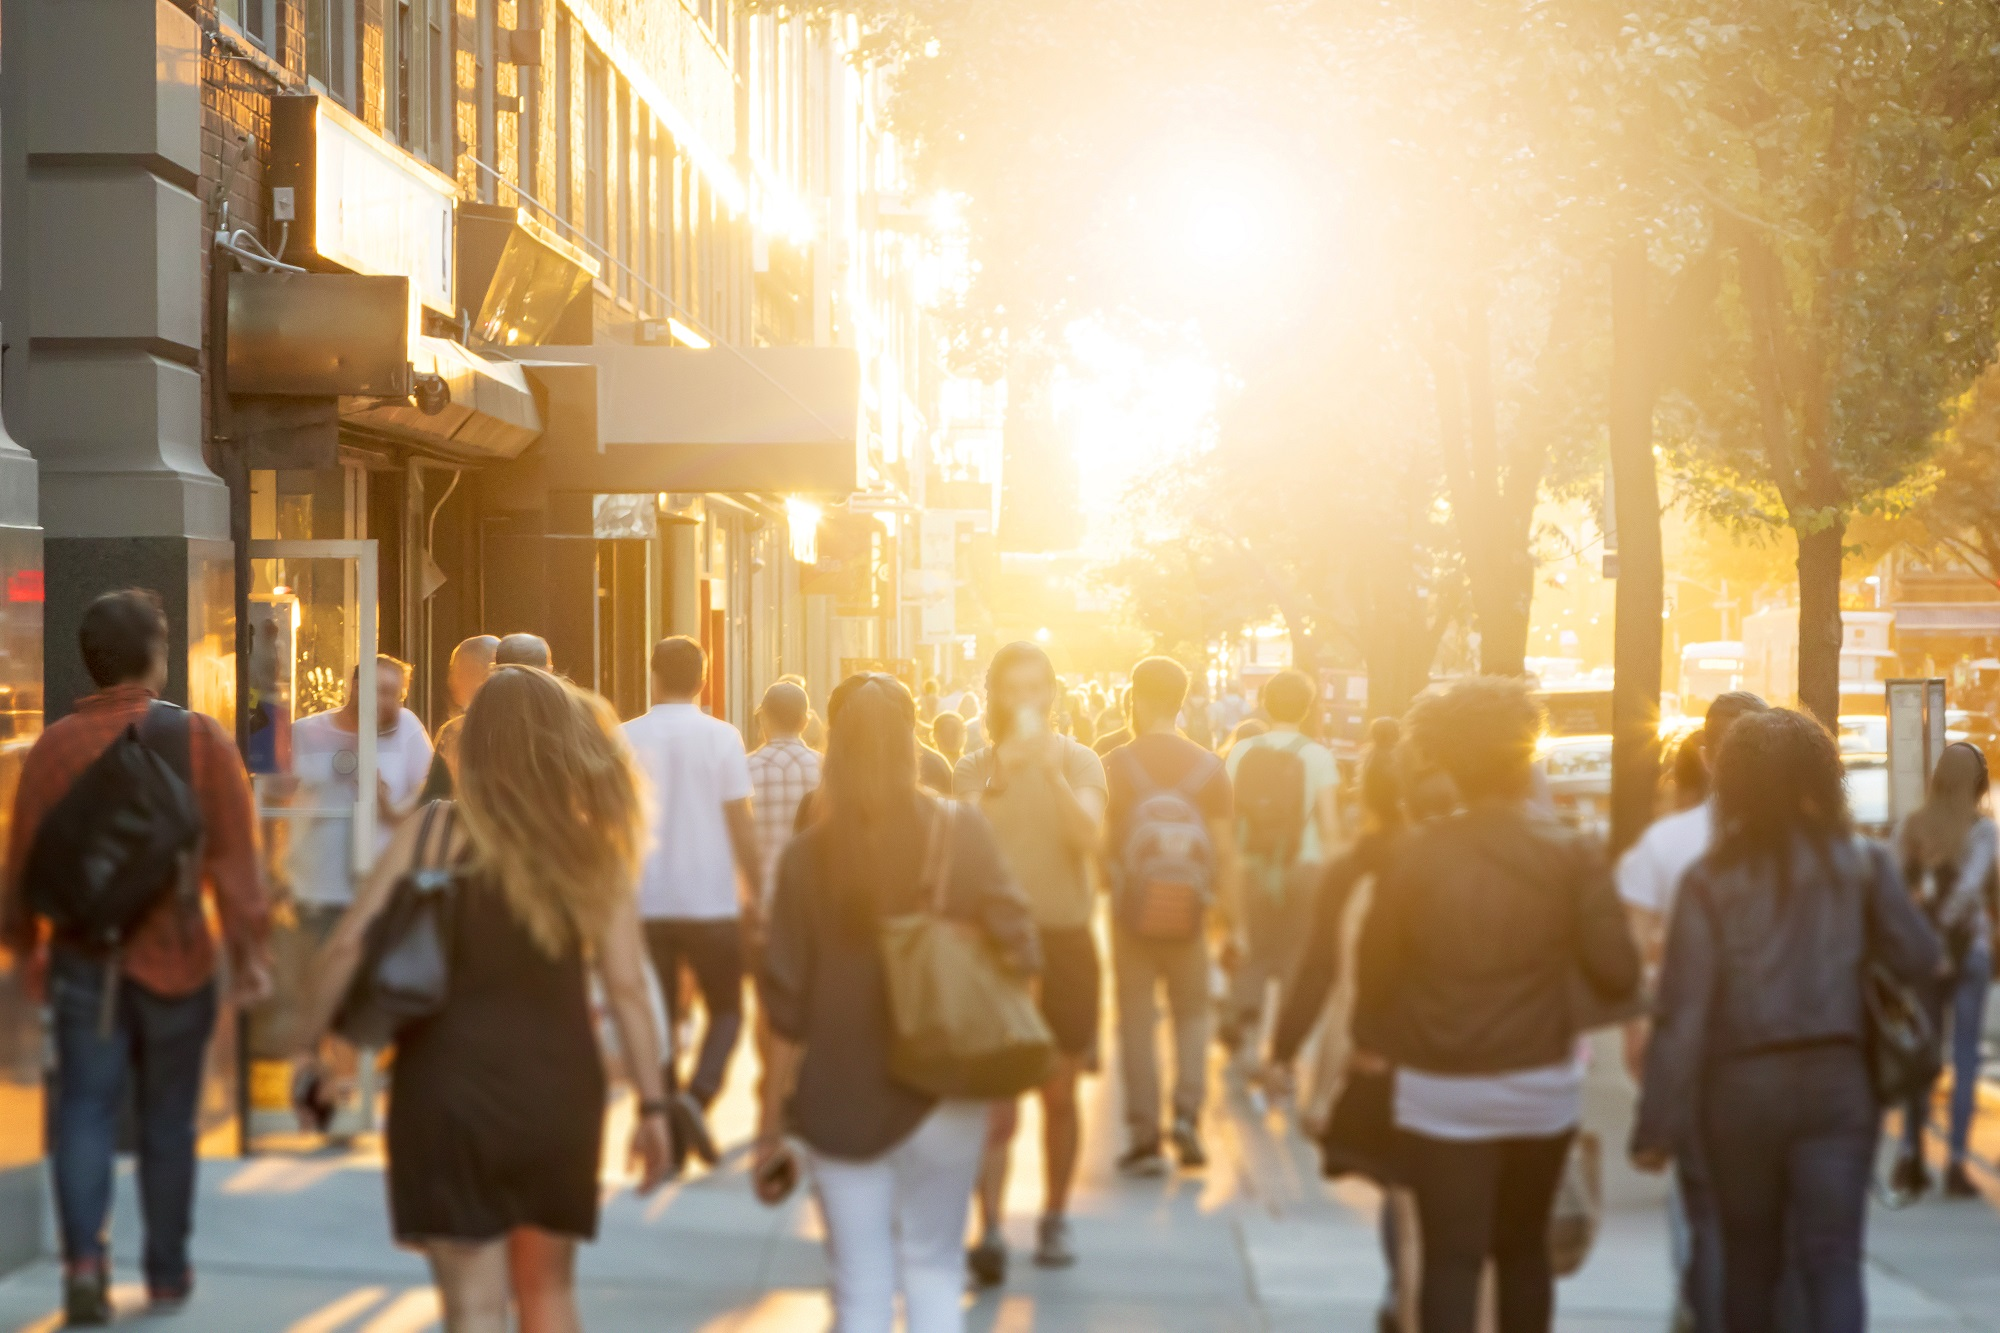 Does the current heatwave give you cause for concern about the temperature in your workplace? Here's how to keep your employees safe in the workplace.